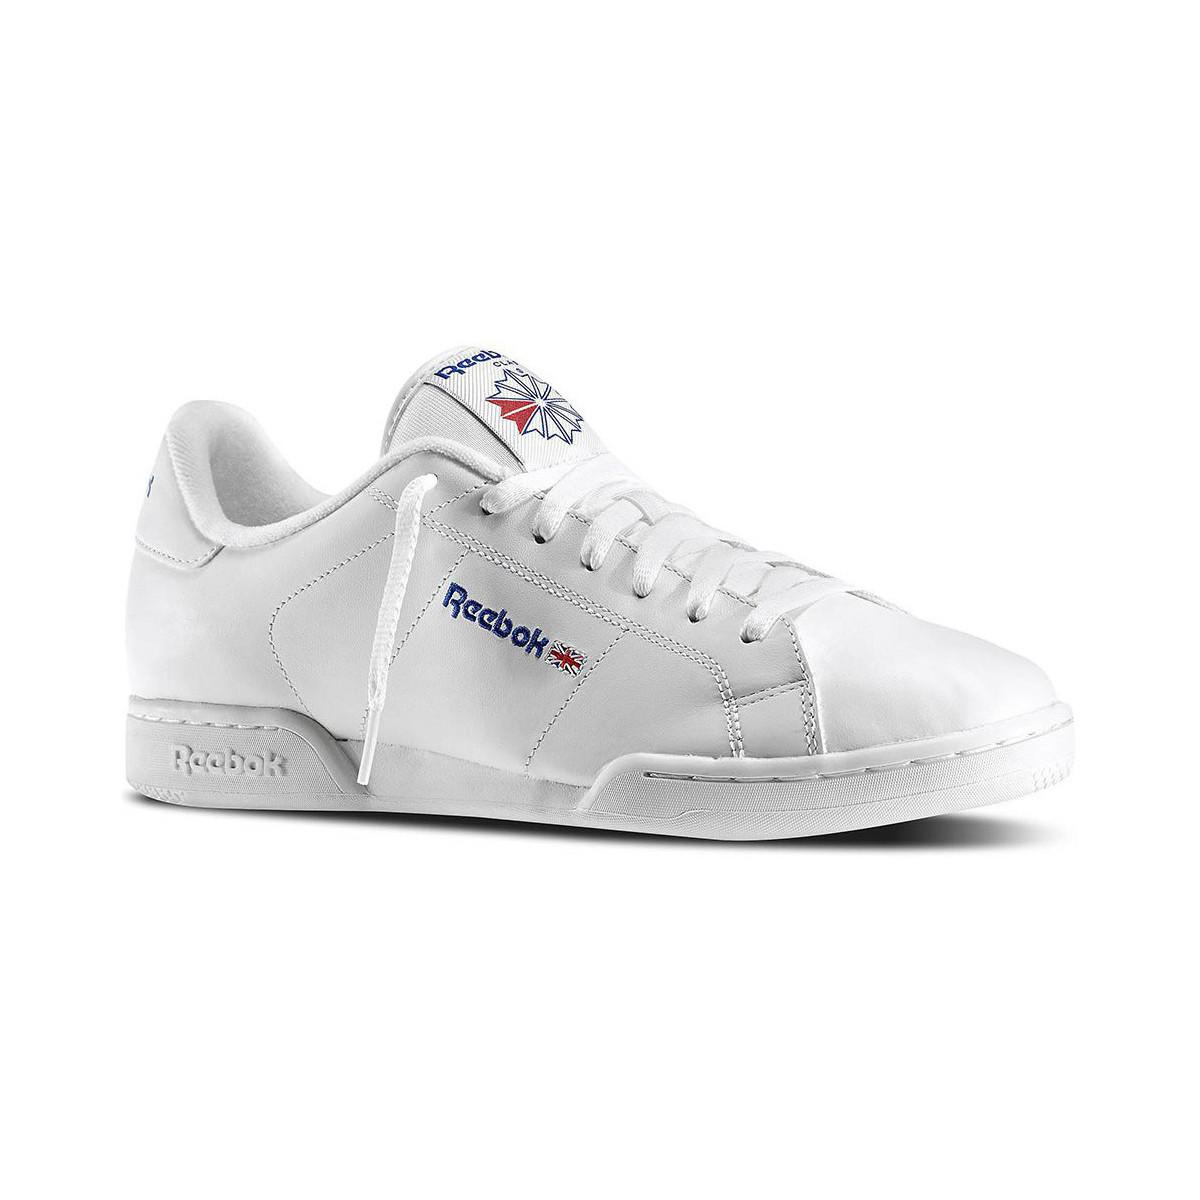 a3bd81810ed26 Reebok Npc Ii Men s Shoes (trainers) In White in White for Men - Lyst